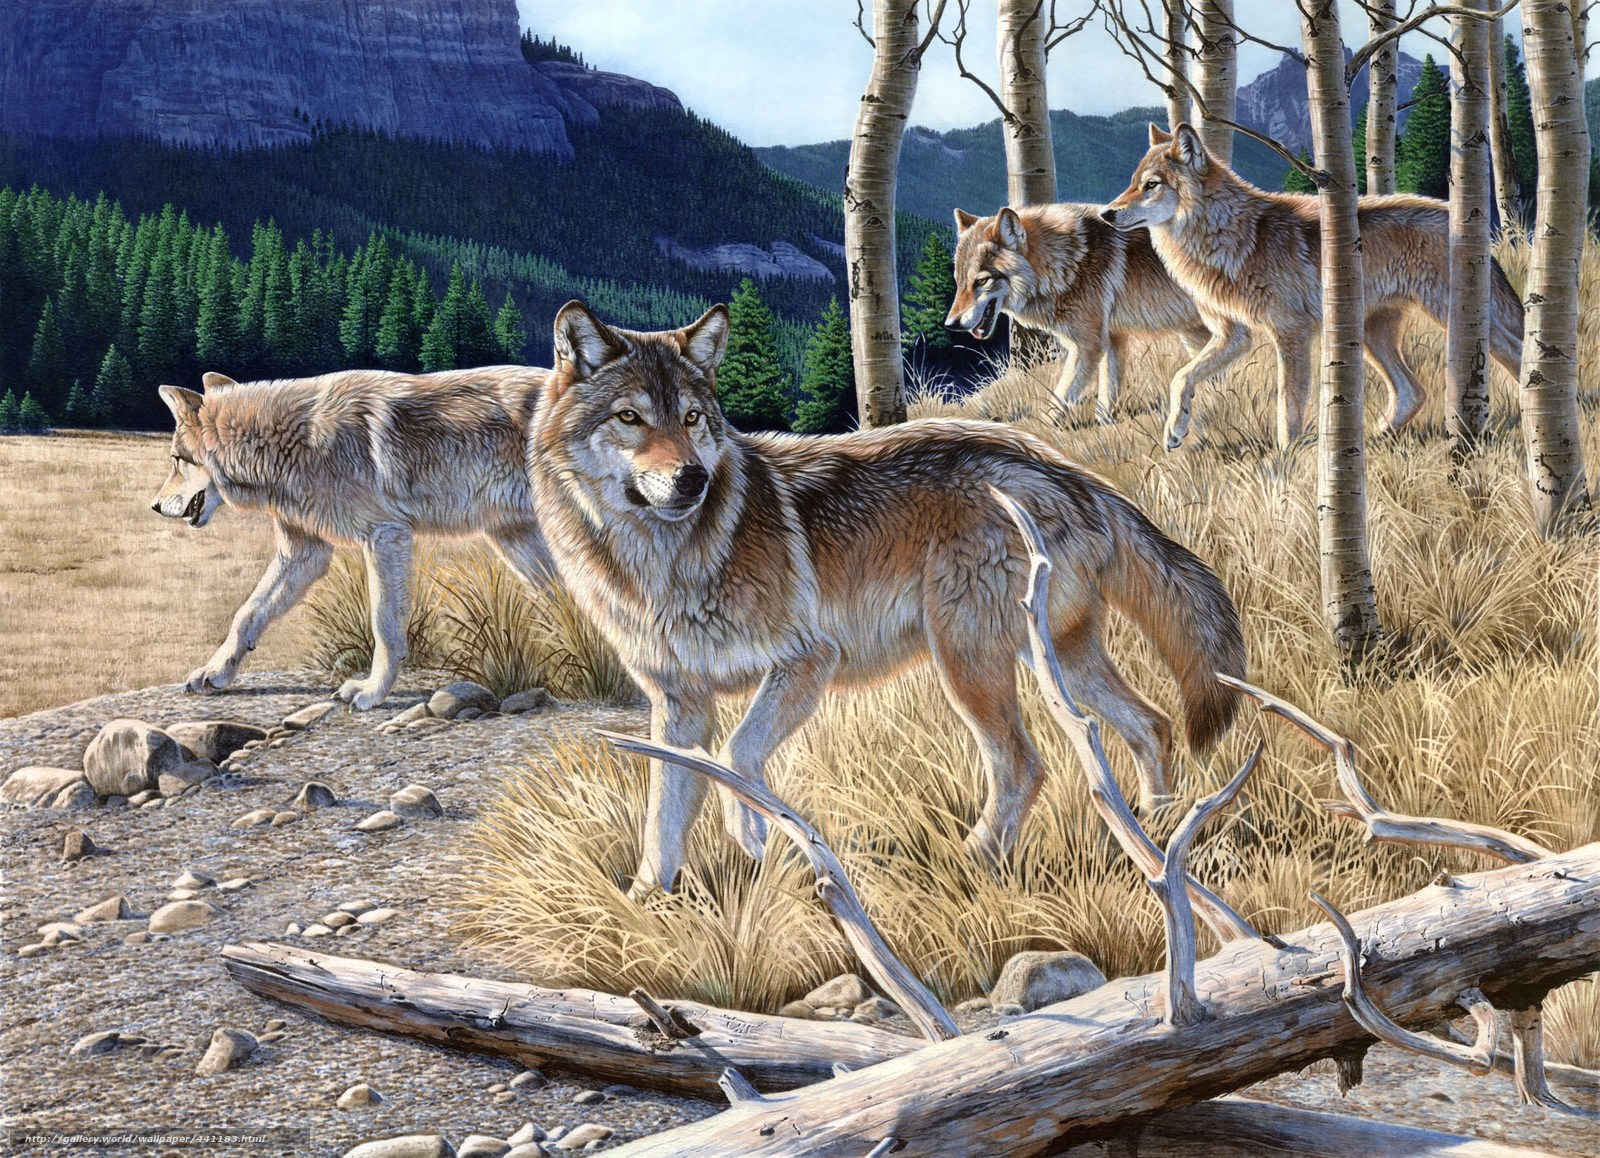 Download wallpaper painting,  Wolves,  wolves,  mountain free desktop wallpaper in the resolution 2426x1756 — picture №441183